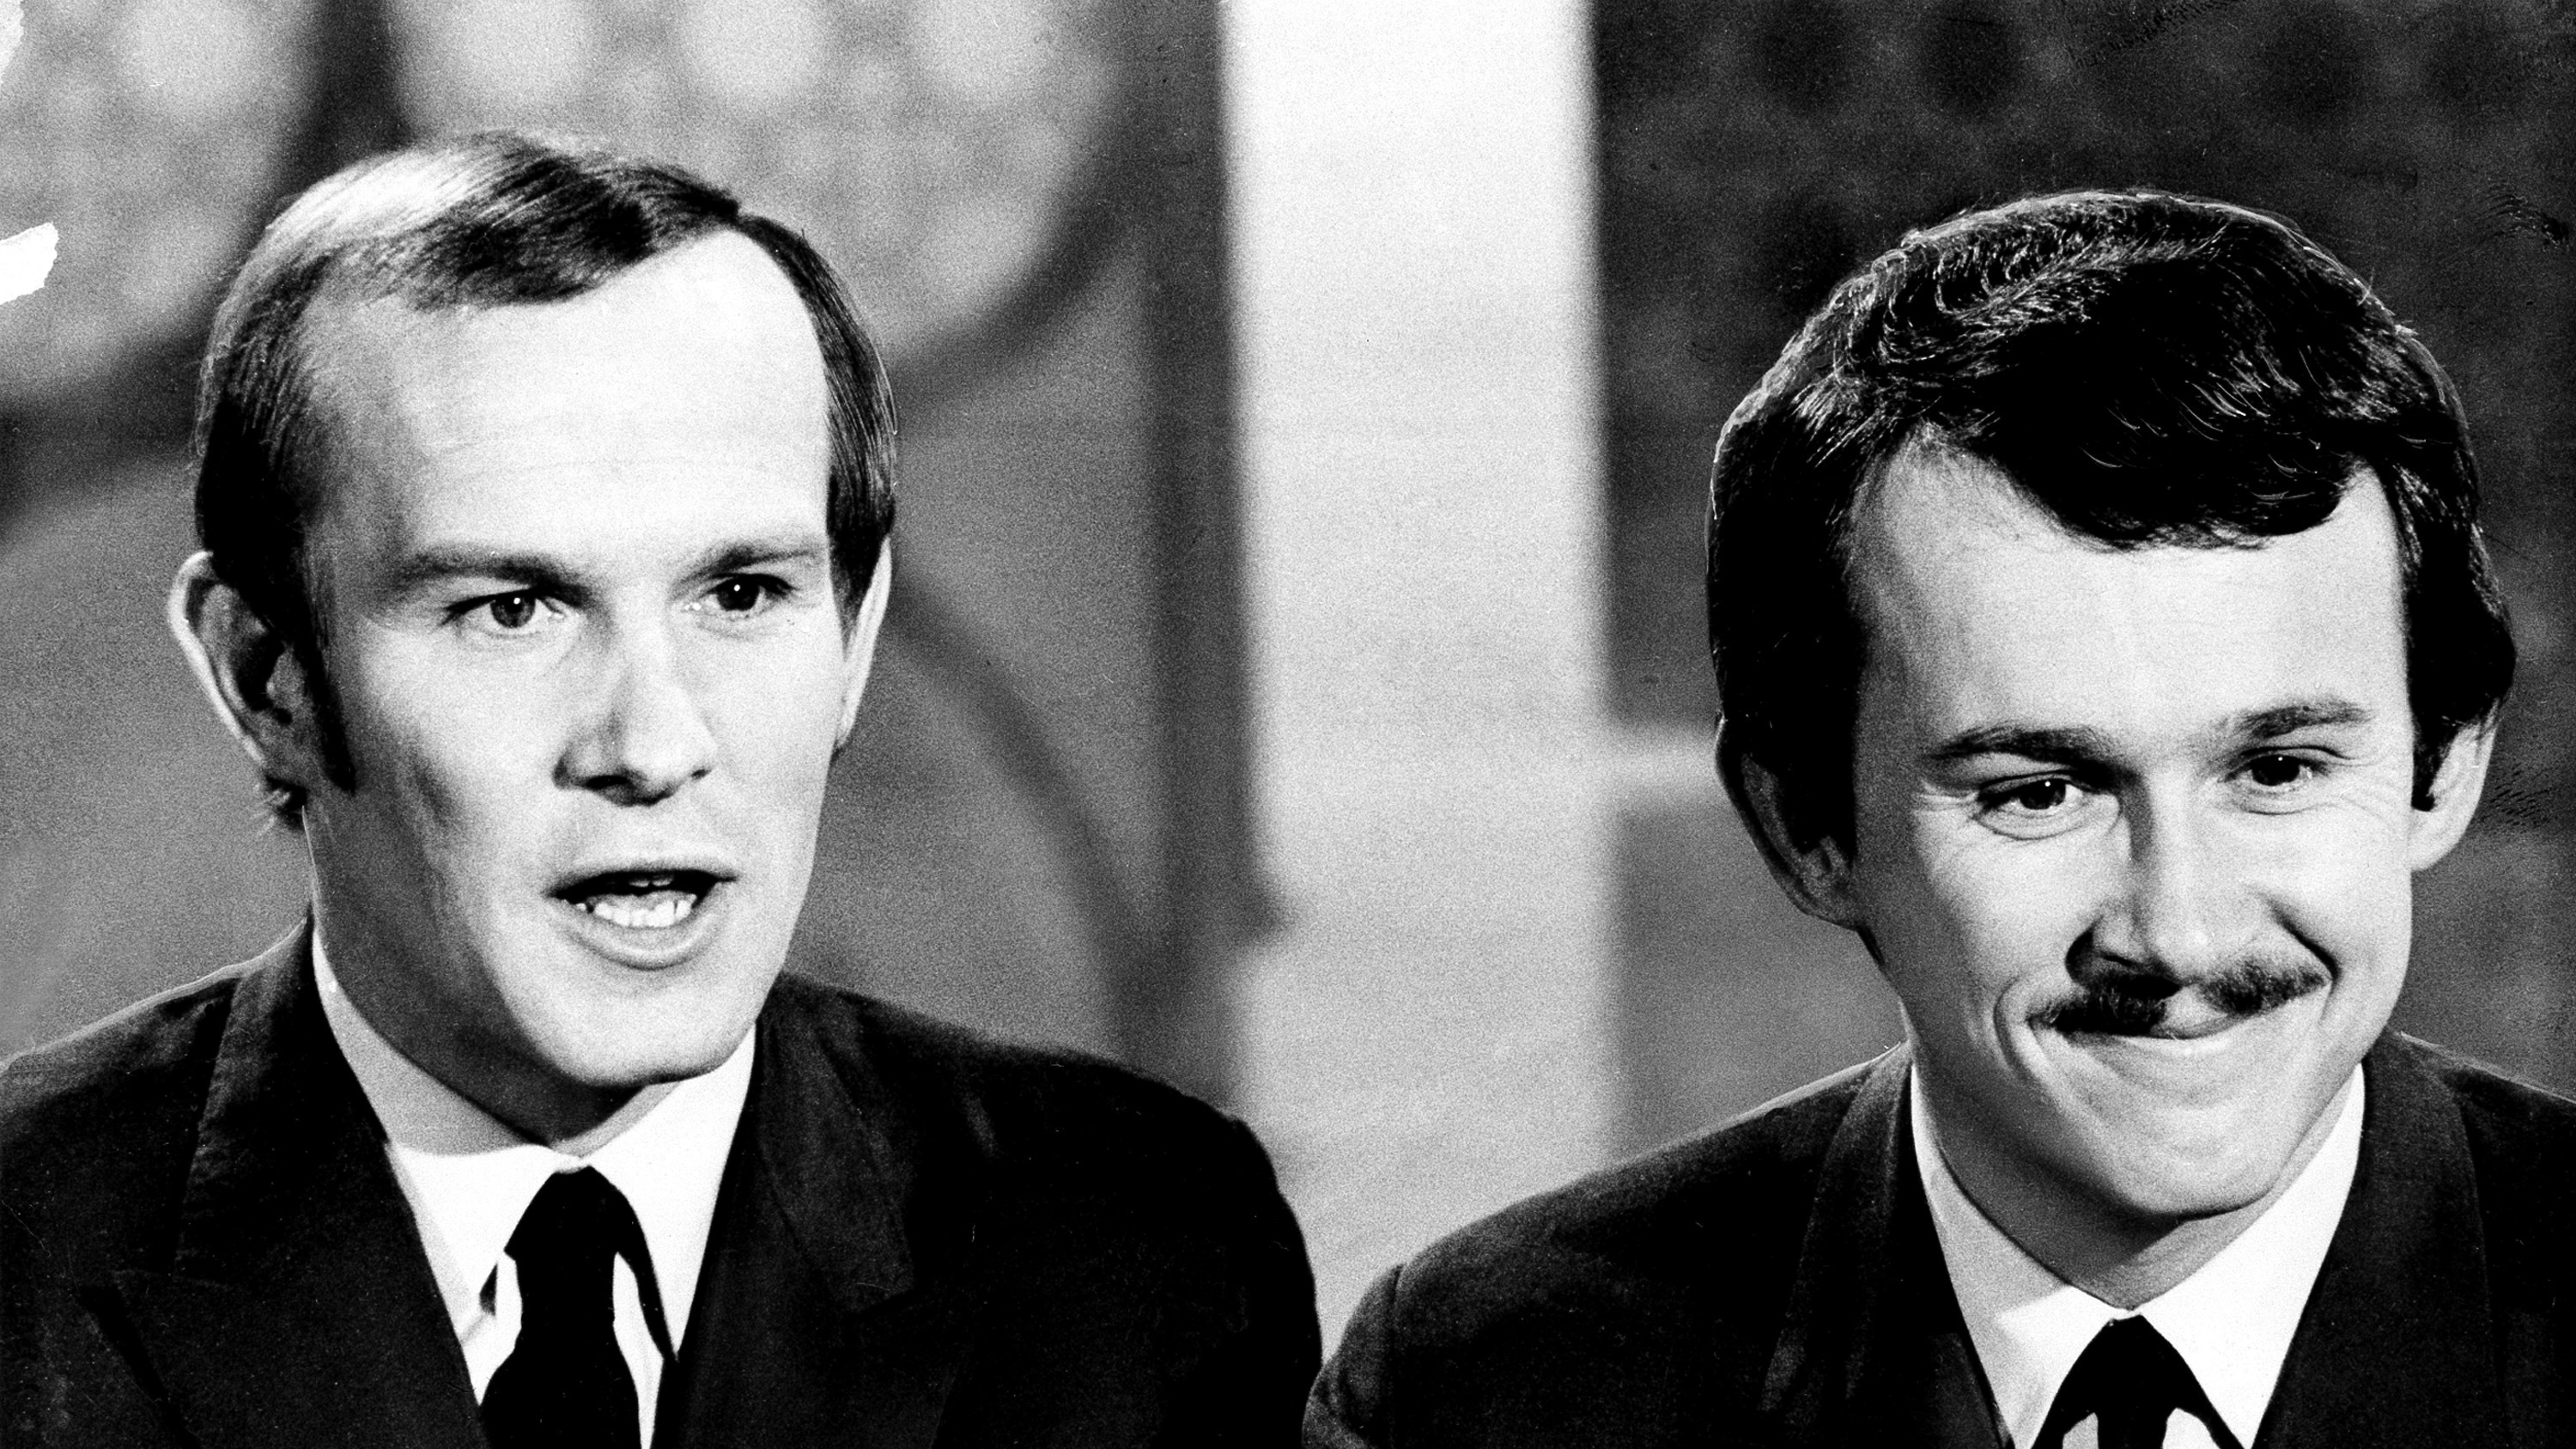 50 Years Later, The Biting Satire Of 'The Smothers Brothers' Still Resonates